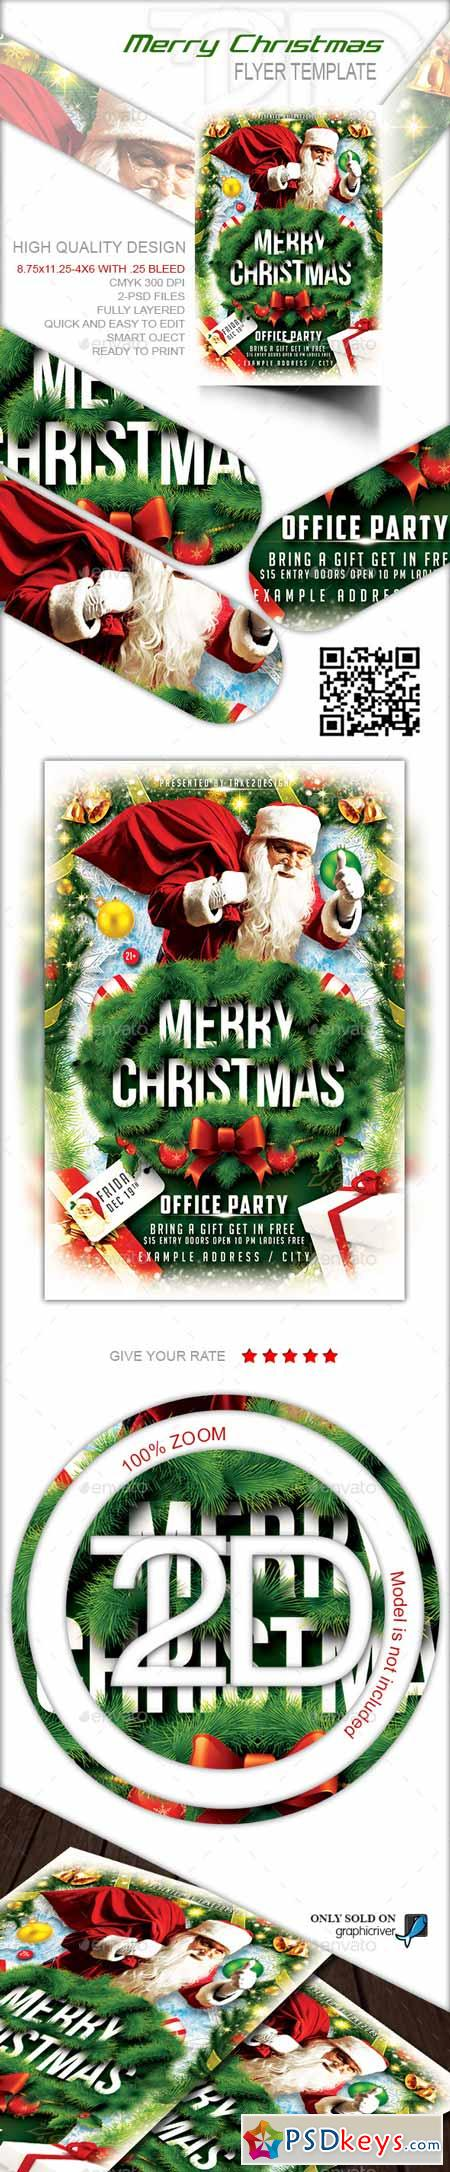 Christmas Party-Merry Christmas 9360099